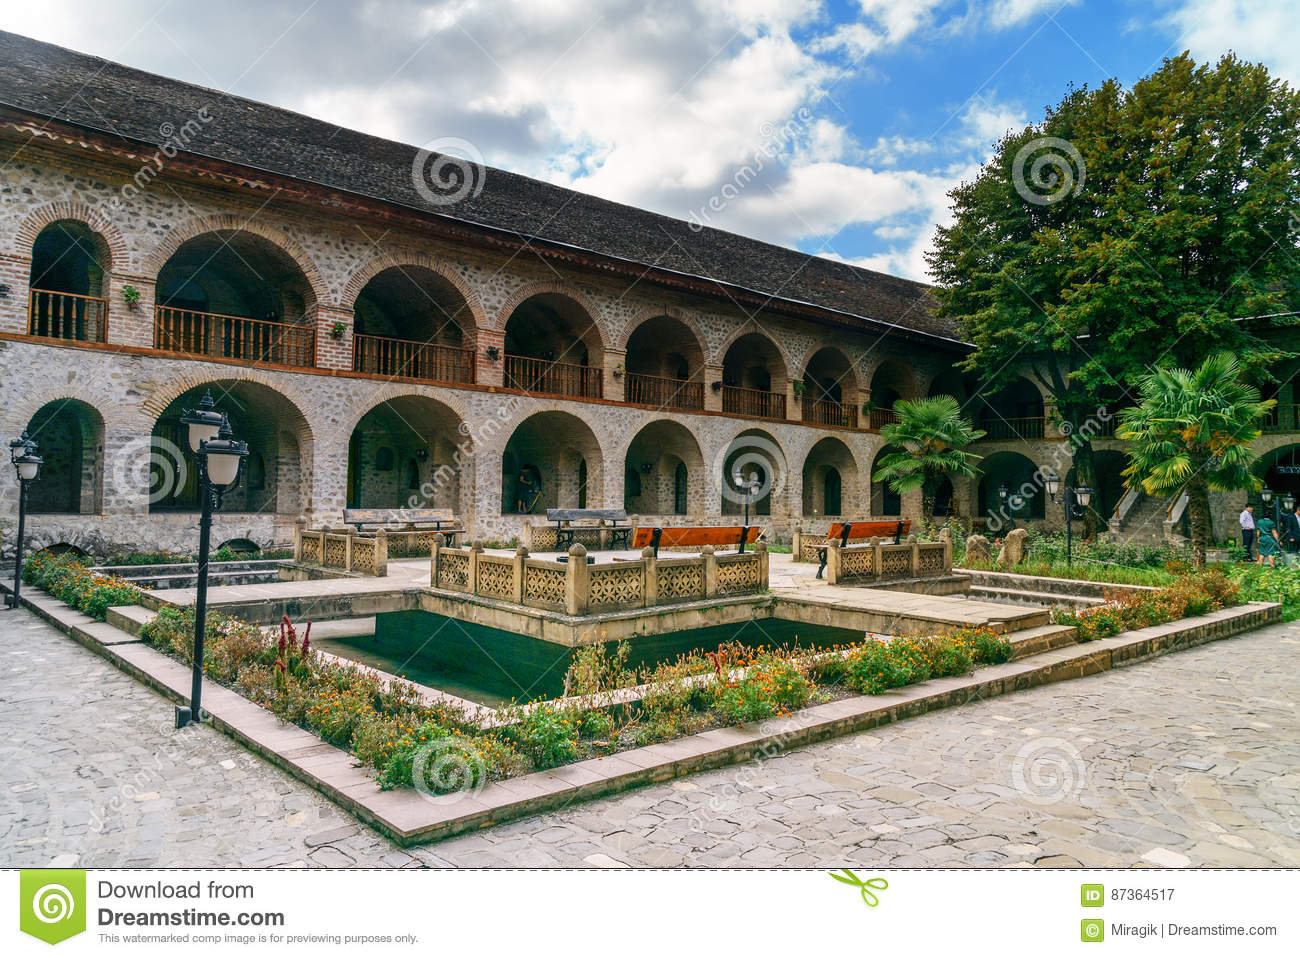 Brilliant  Caravanserai Sheki Is Small City Situated In Northern Azerbaijan In